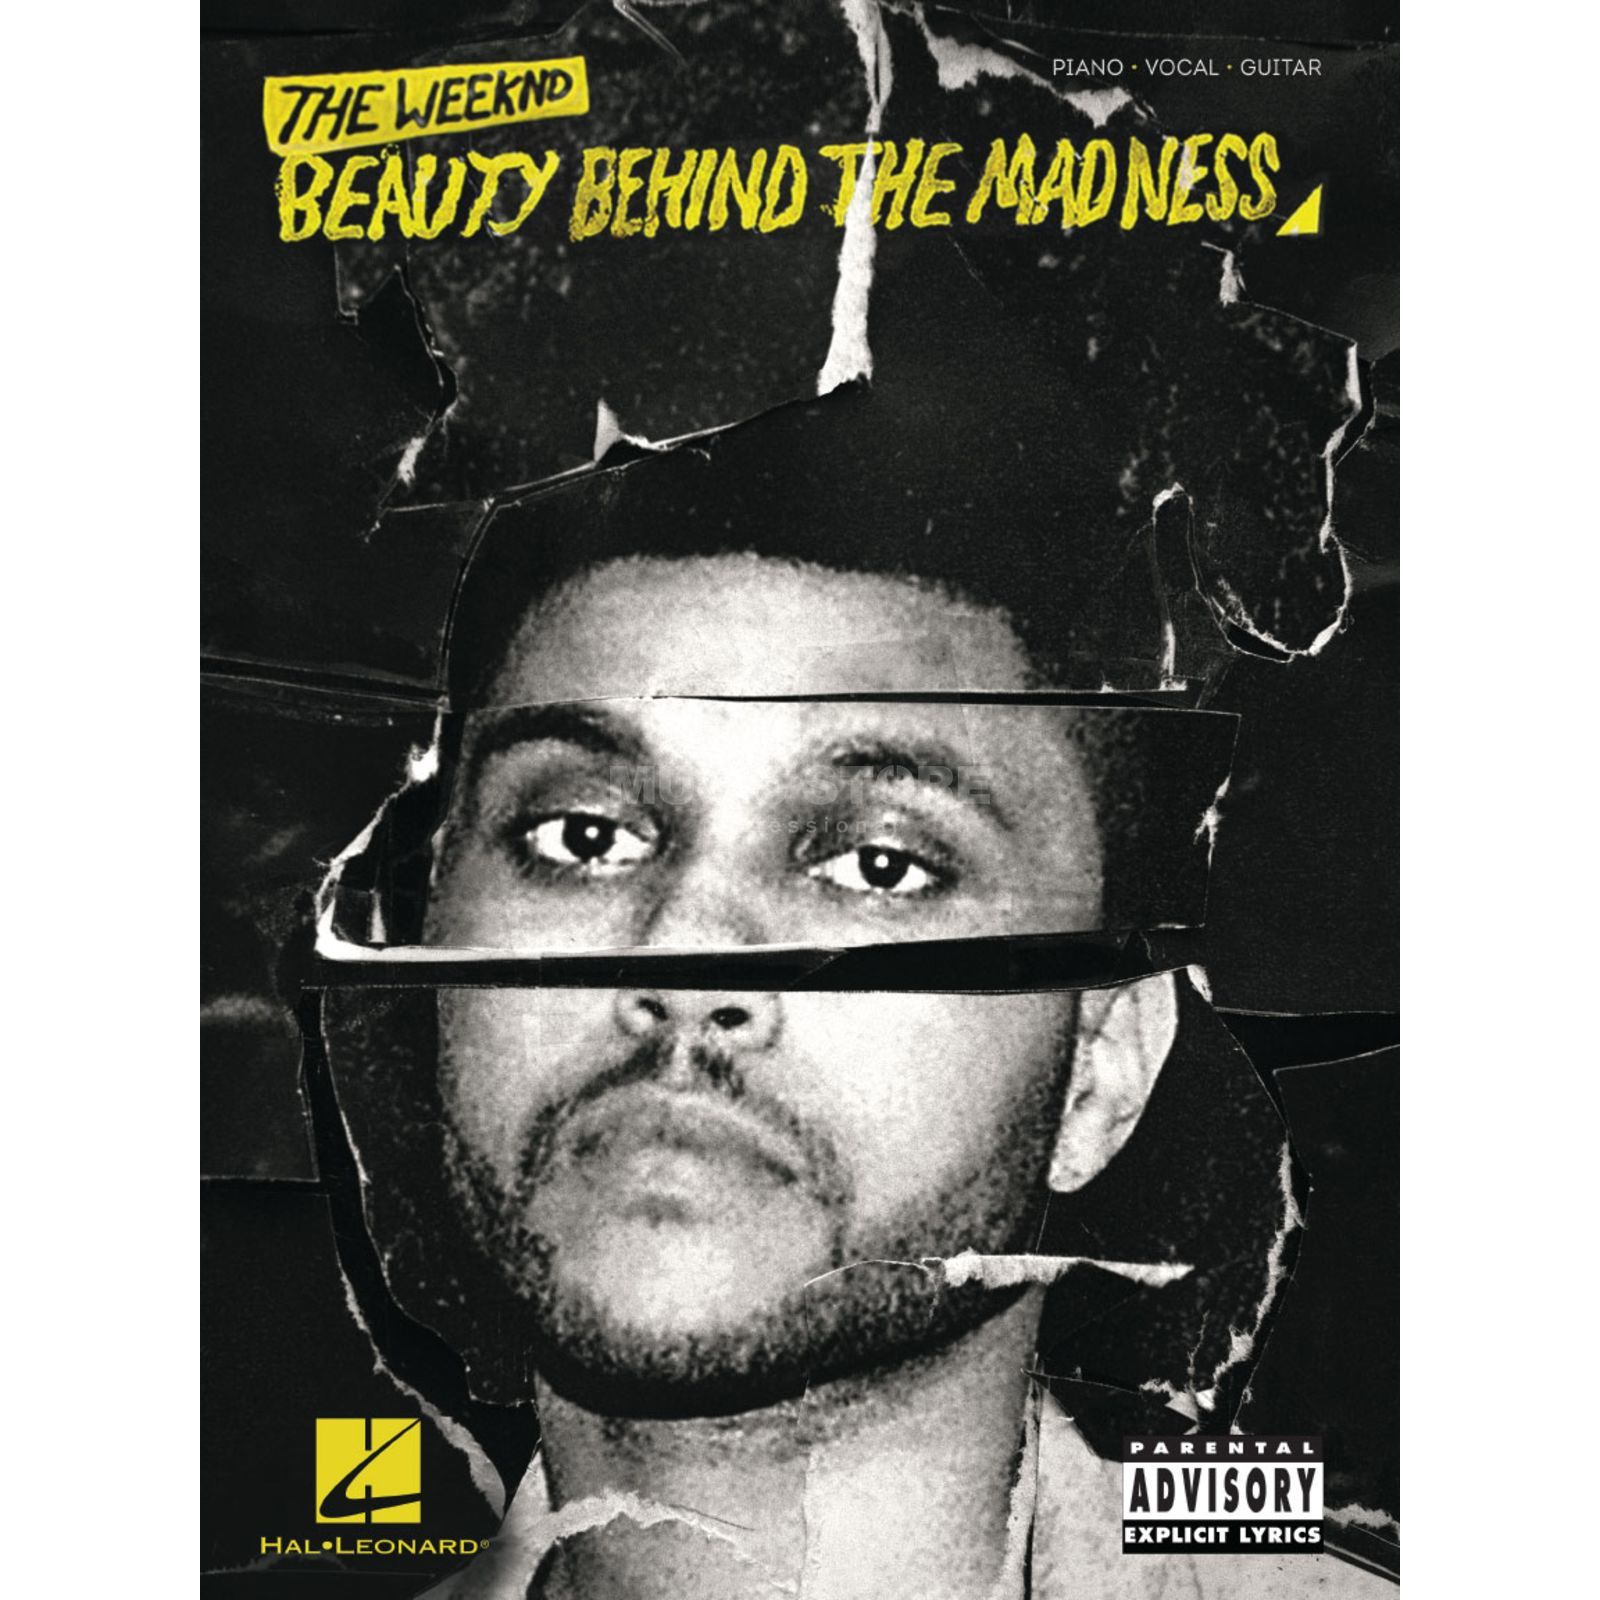 Hal Leonard The Weeknd: Beauty Behind The Madness Imagem do produto